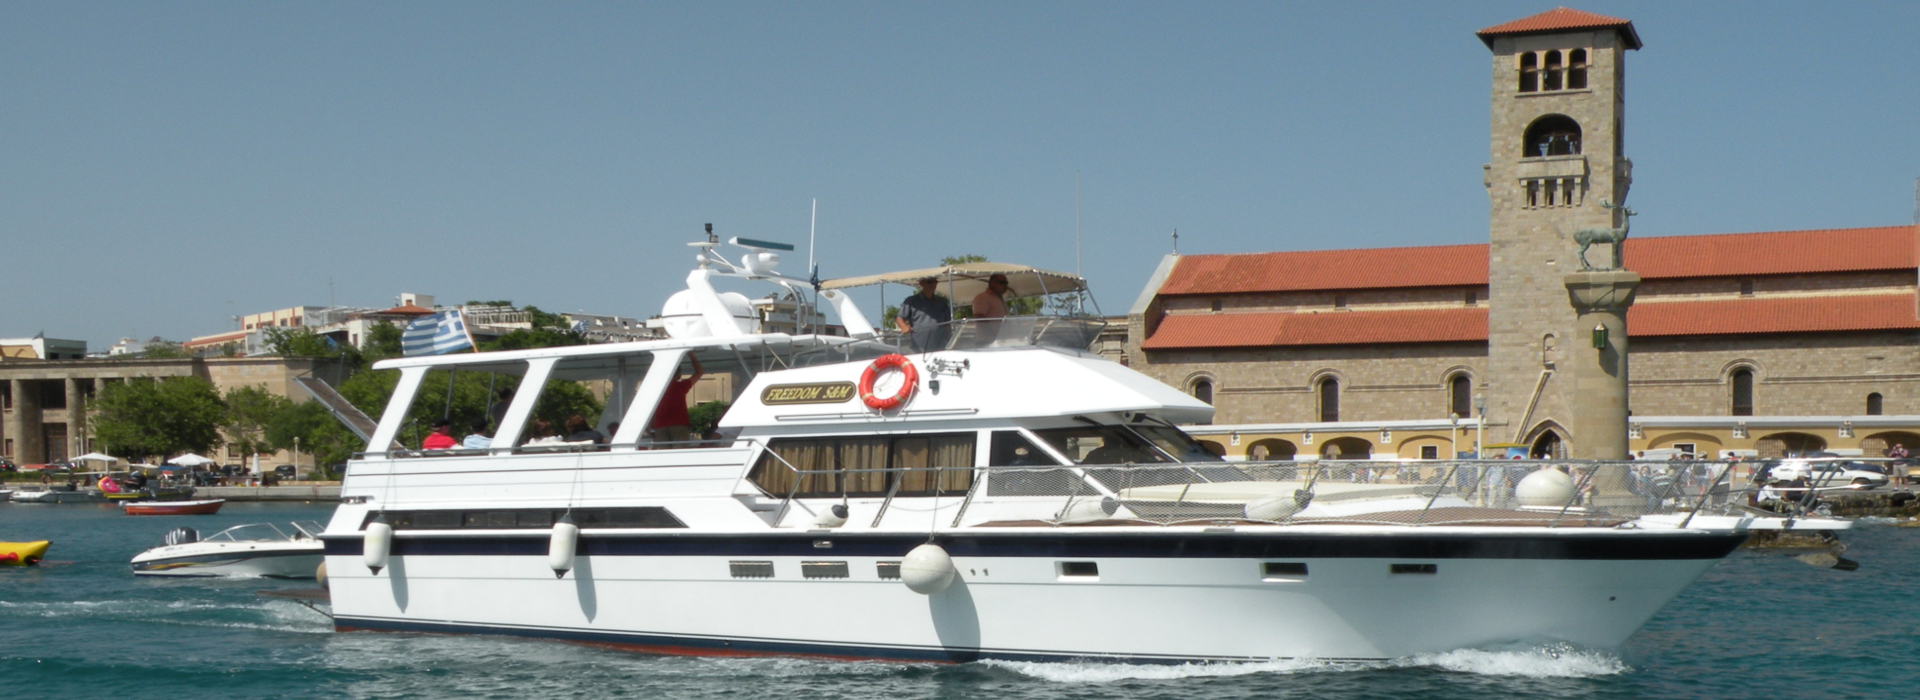 Freedom S&M motorboot te huur in Rhodos | Captains Tours